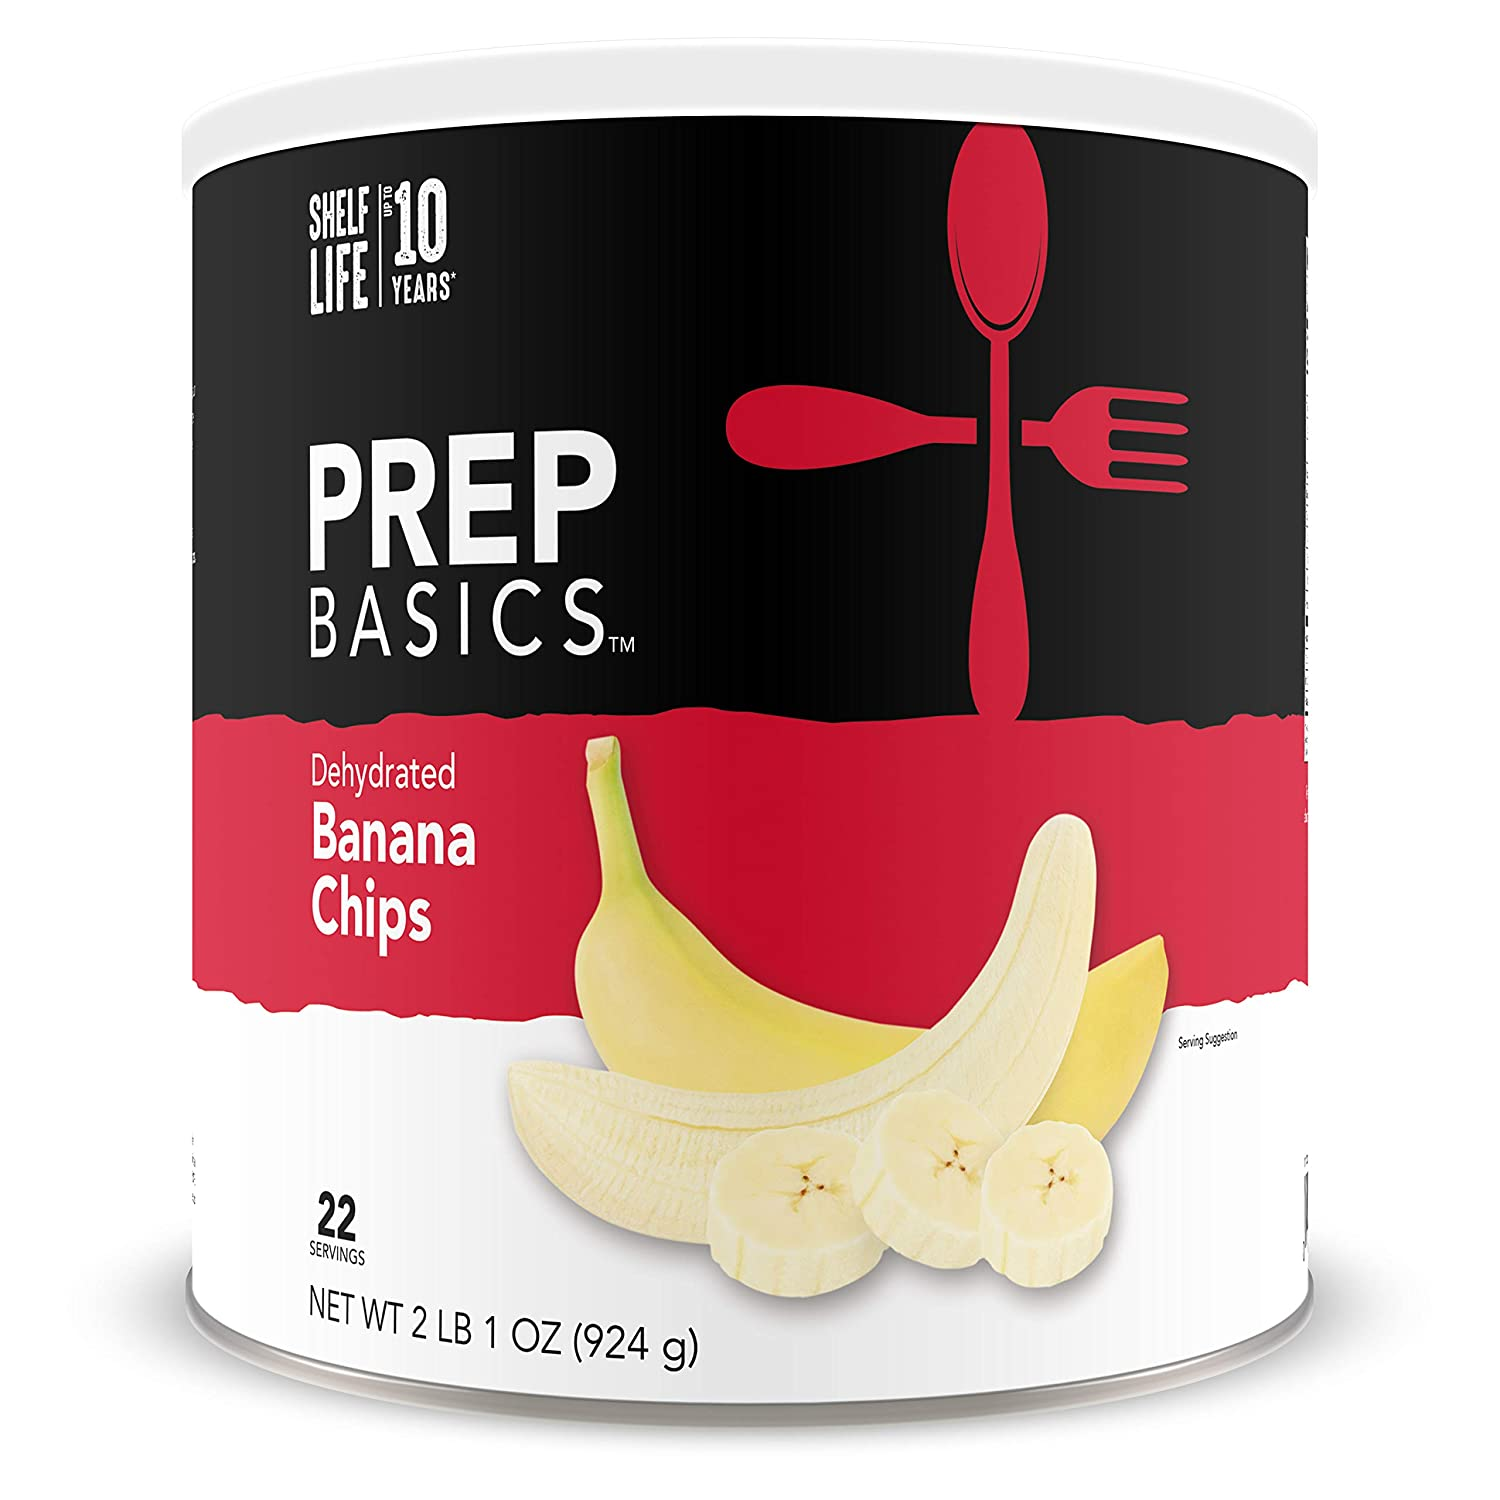 Prep Basics Dehydrated Banana Chips | 2 Pack Large CANS | Emergency Food Supply | 10, 560 Total Calorie | 44 Totalg Protein | Shelf Lifeup To 10 Years